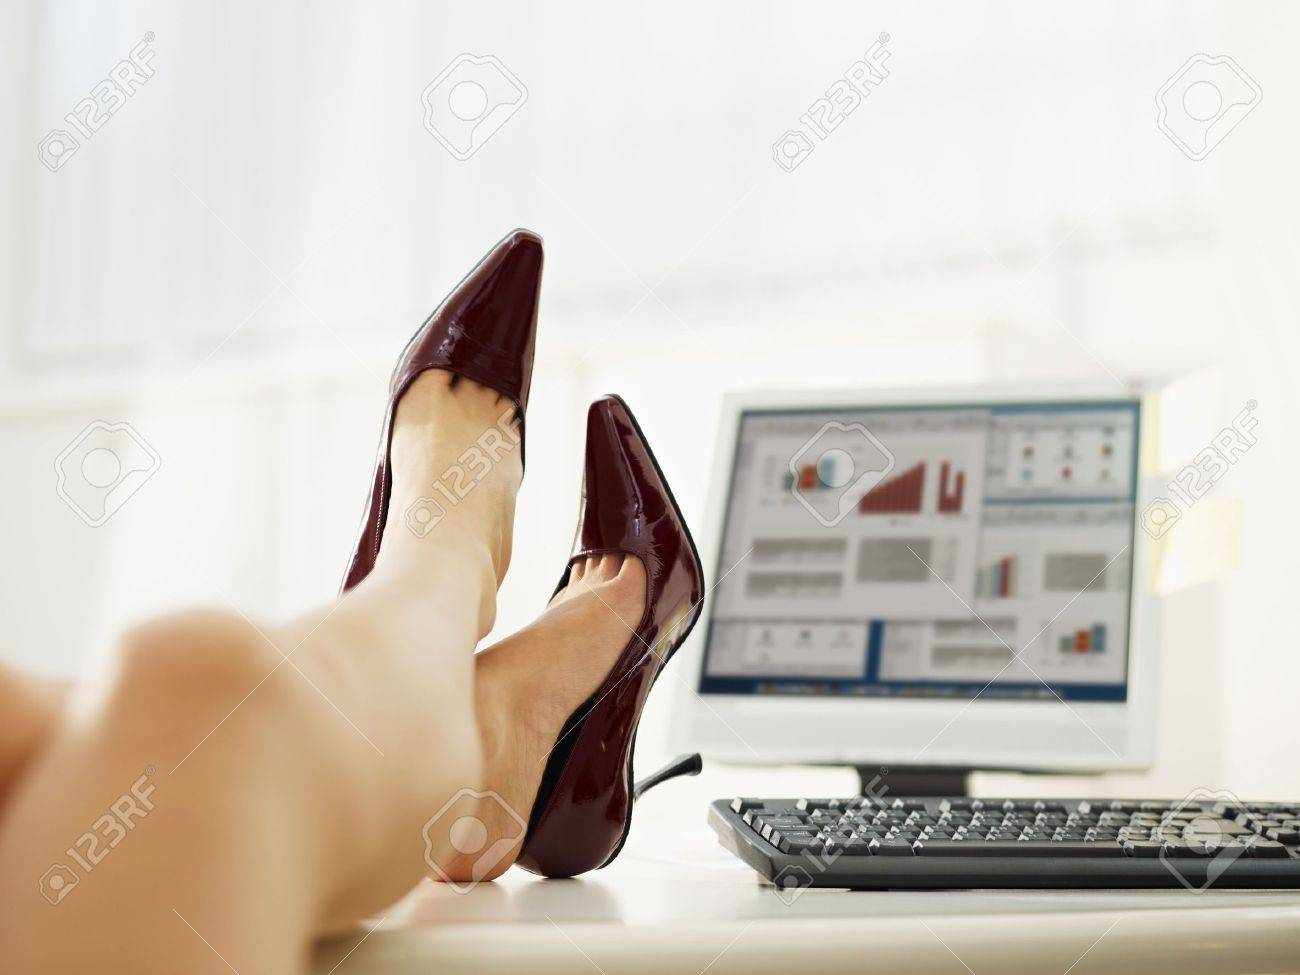 business woman taking off shoes in office. Copy space Stock Photo - 6309673